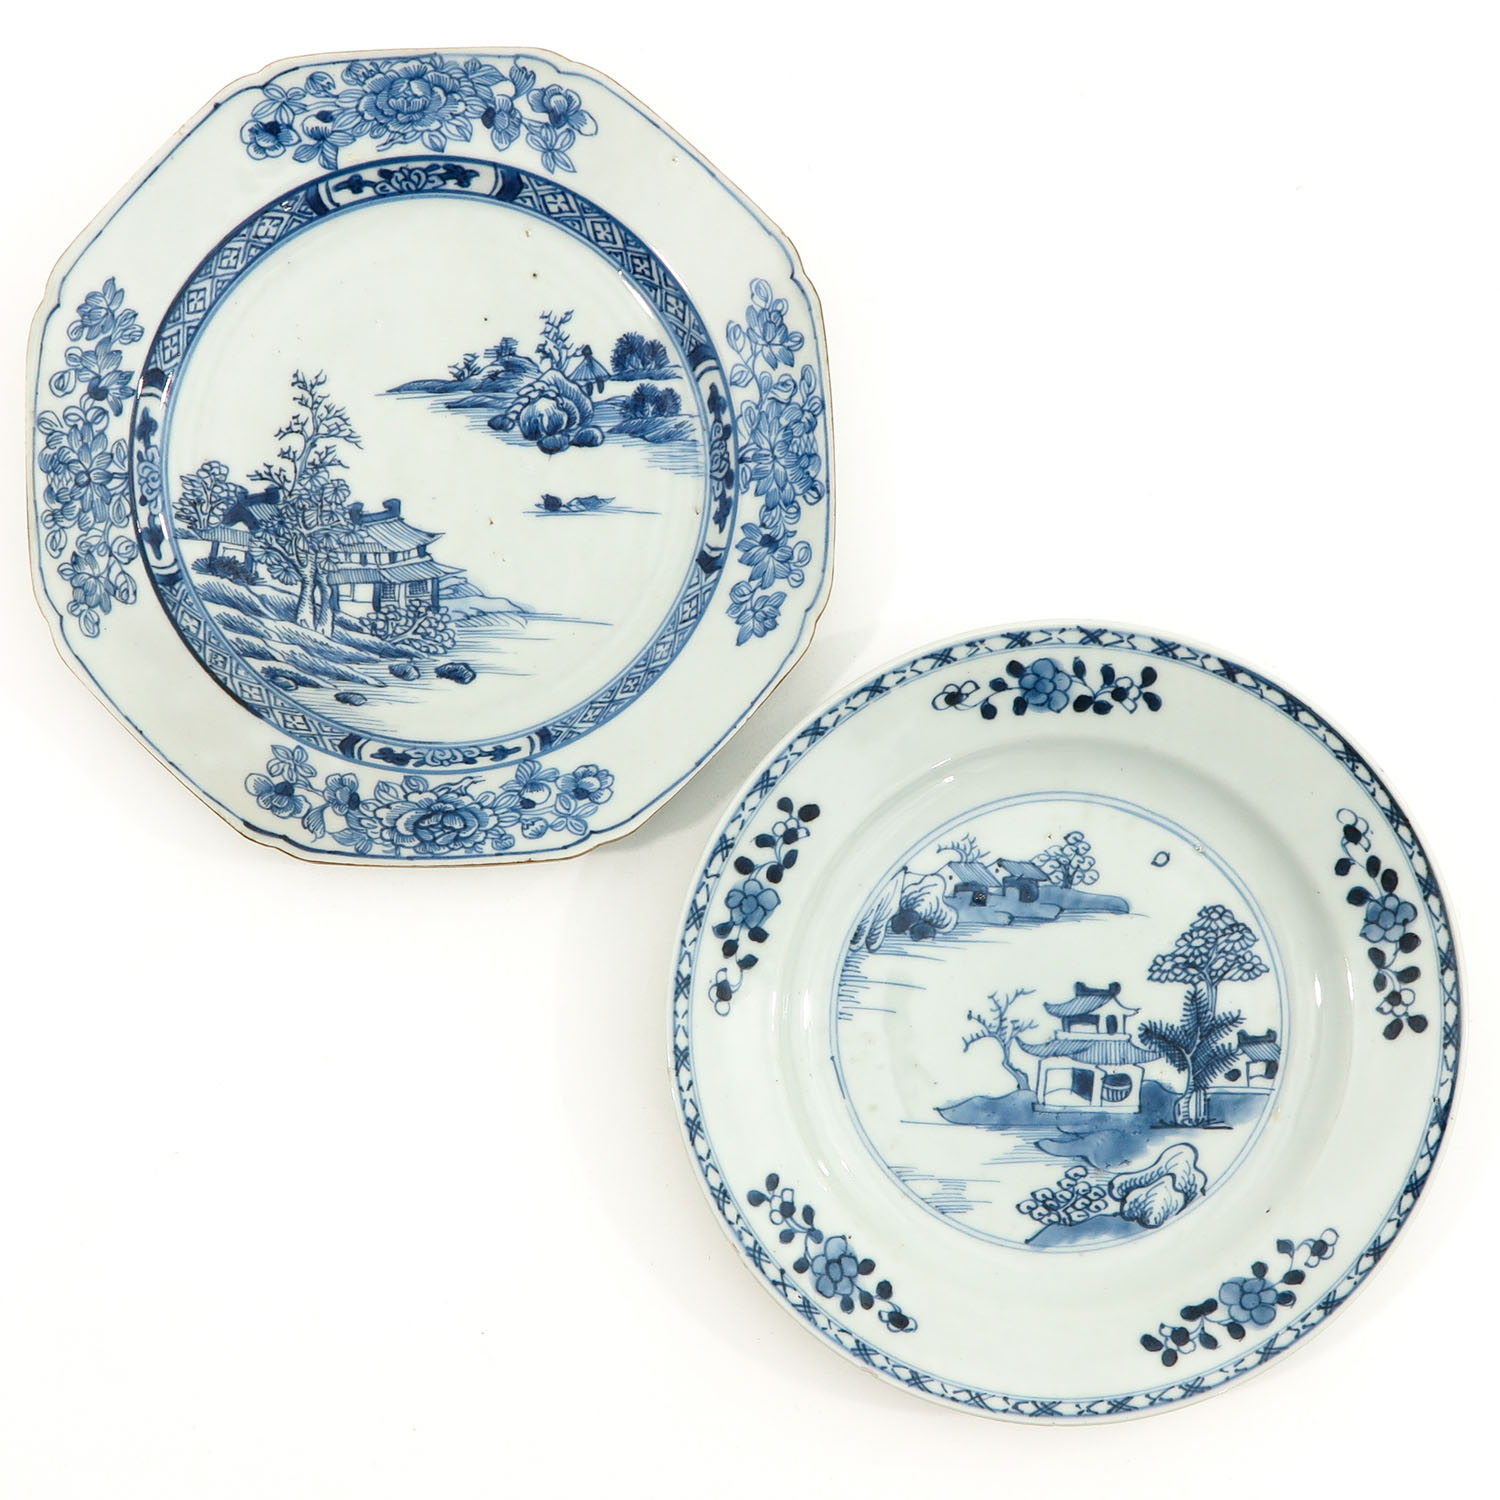 A Set of 6 Blue and White Plates - Image 5 of 10